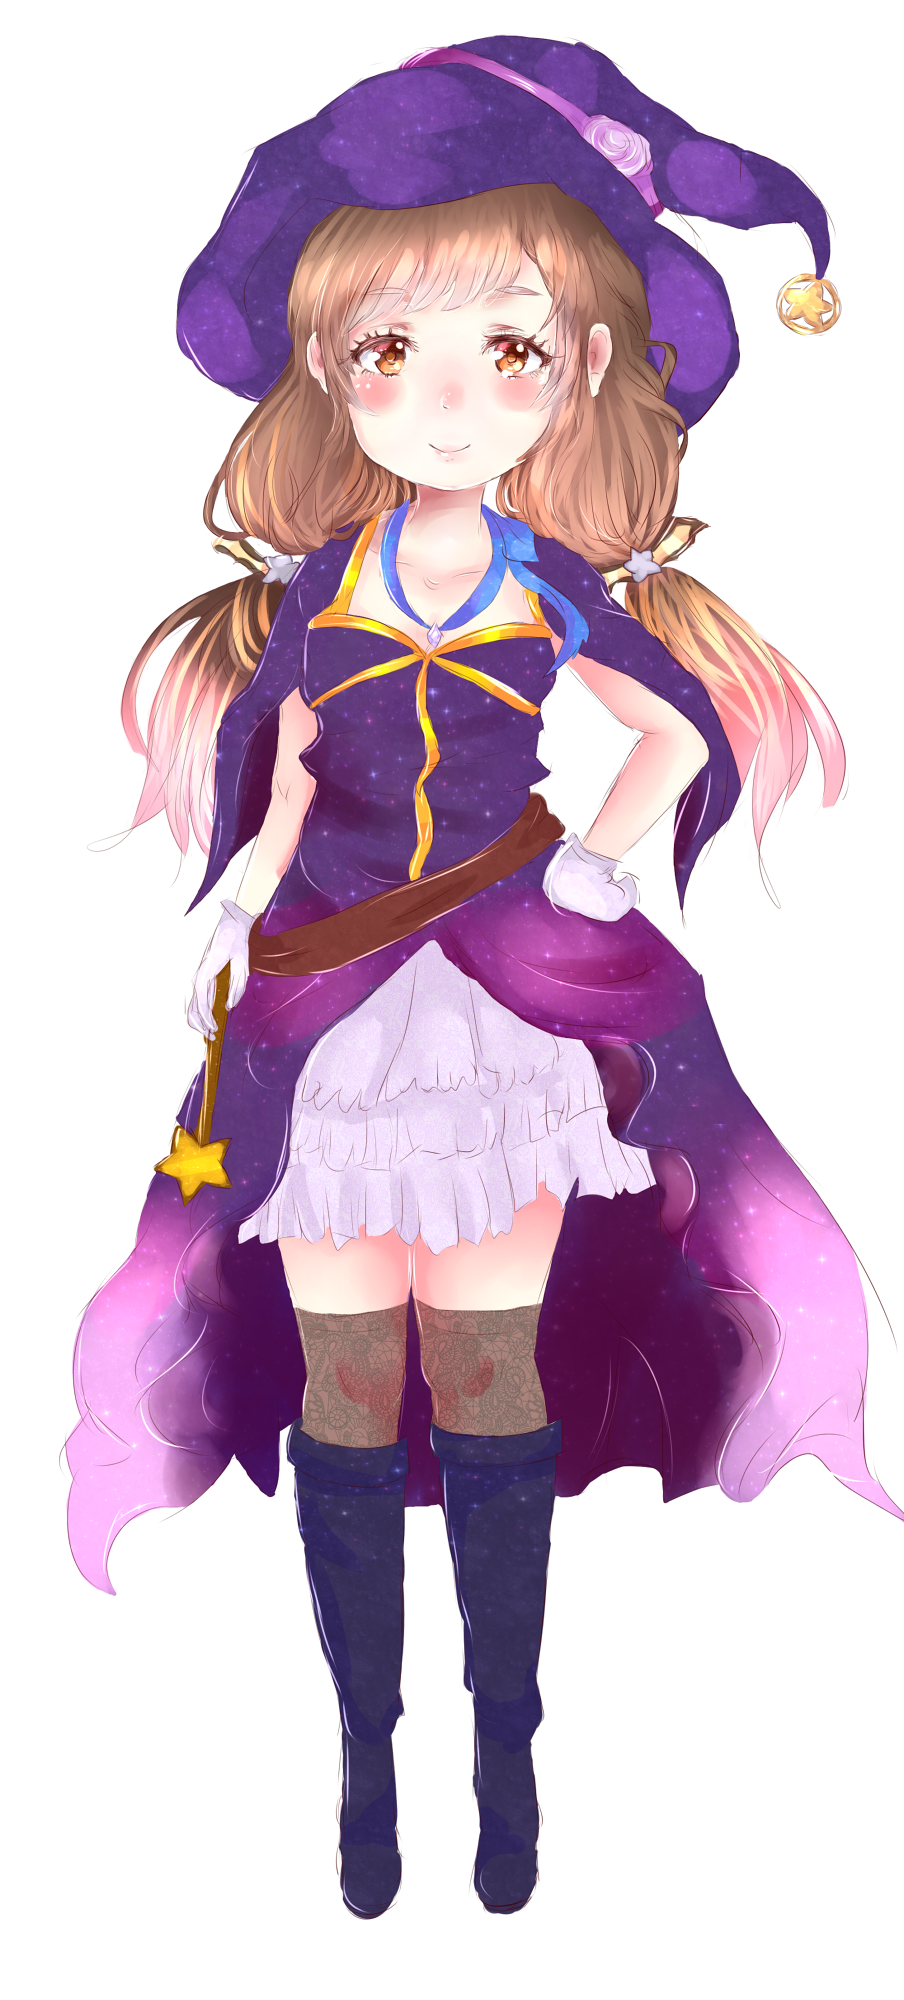 rina_smol_by_little_x_flower-dbi9yuw.png